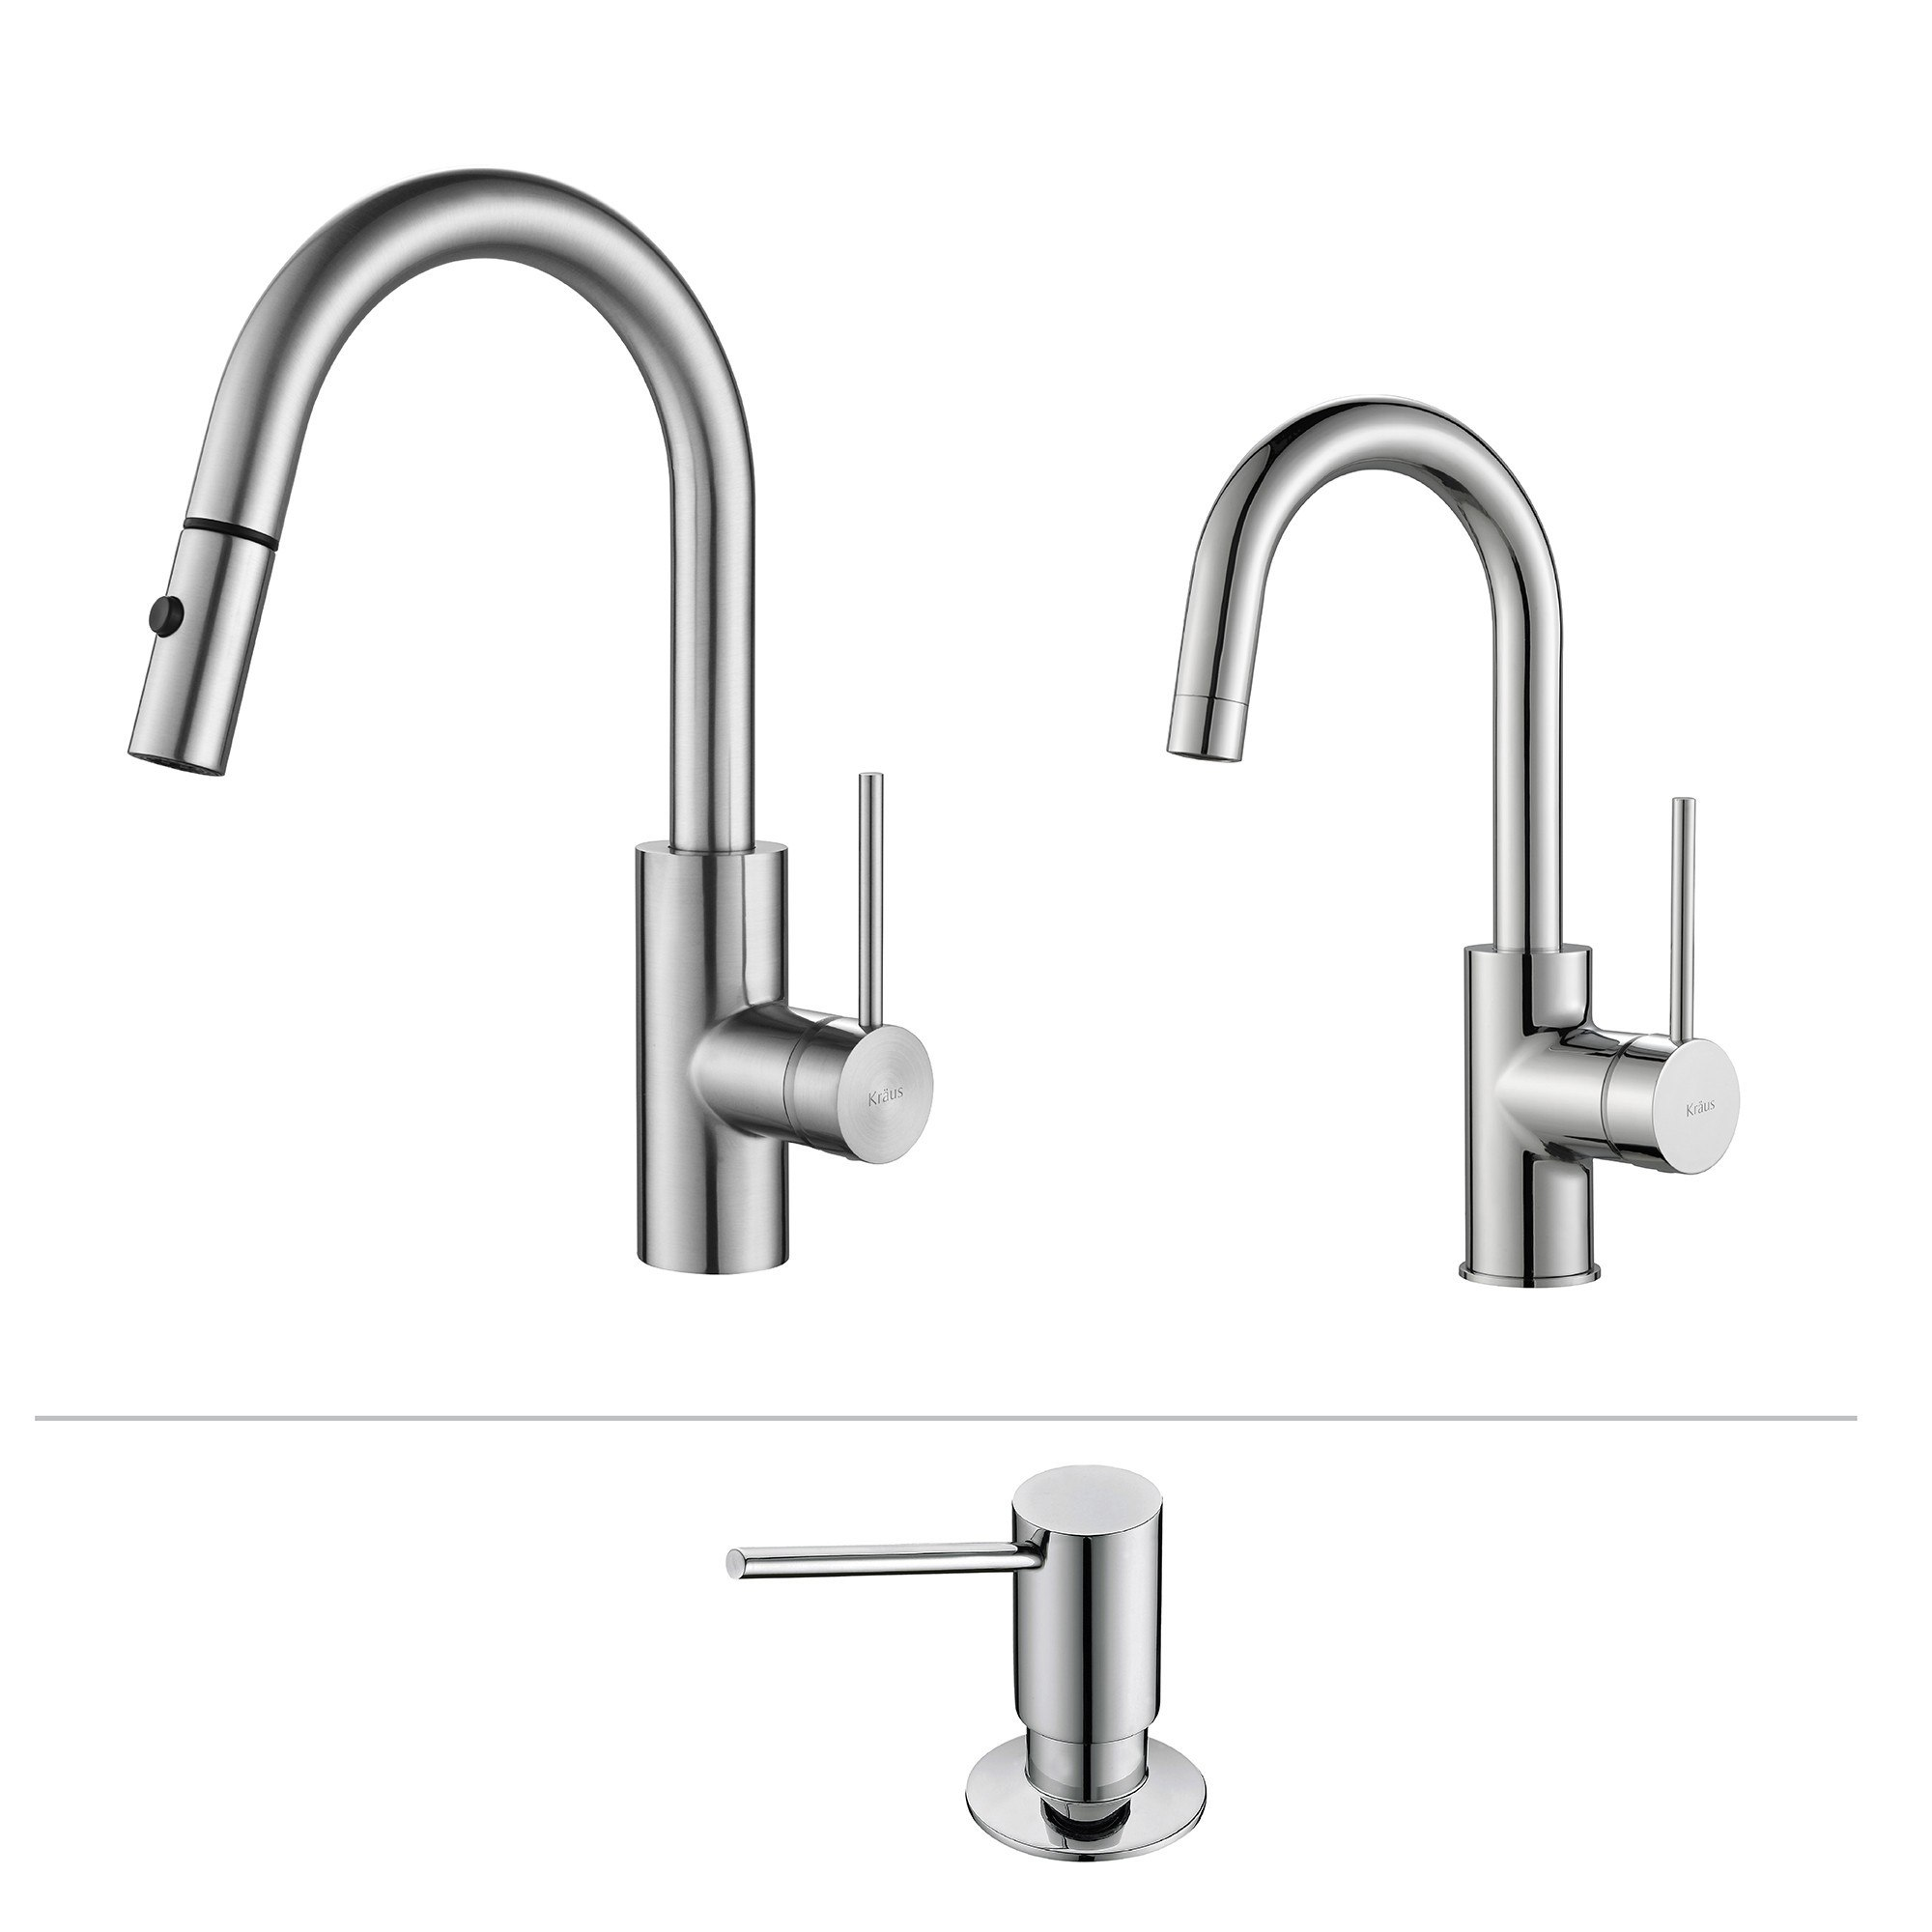 Kraus KPF-2620-2600-41 Mateo Pull Down Kitchen Faucet with Bar/Prep Faucet & Soap Dispenser